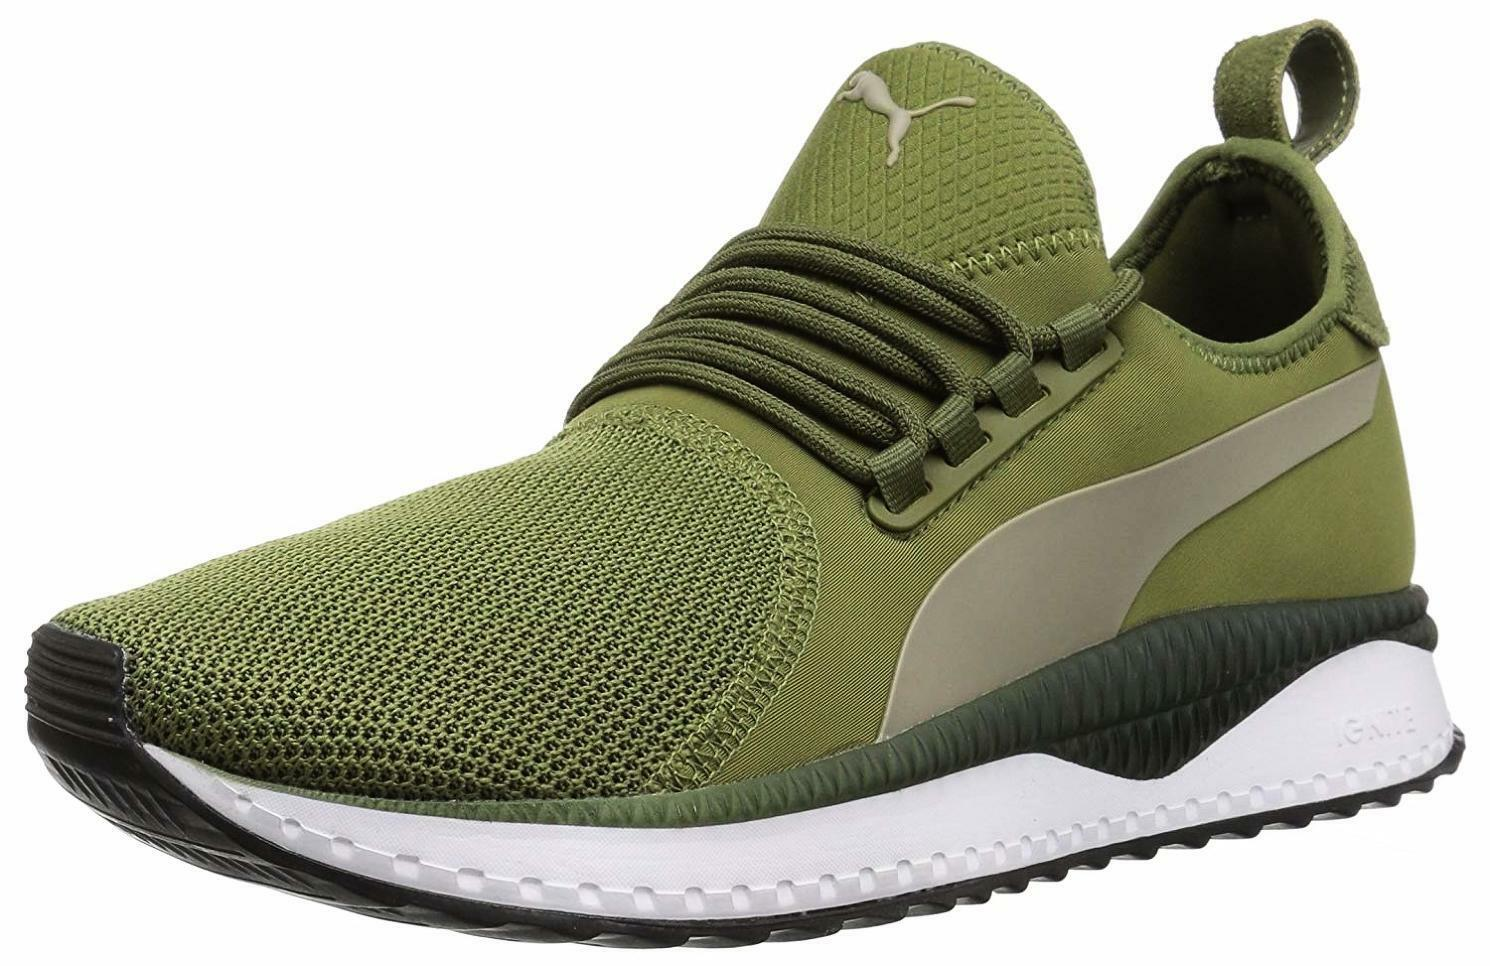 PUMA Men's Tsugi Apex Sneaker - Choose SZ color